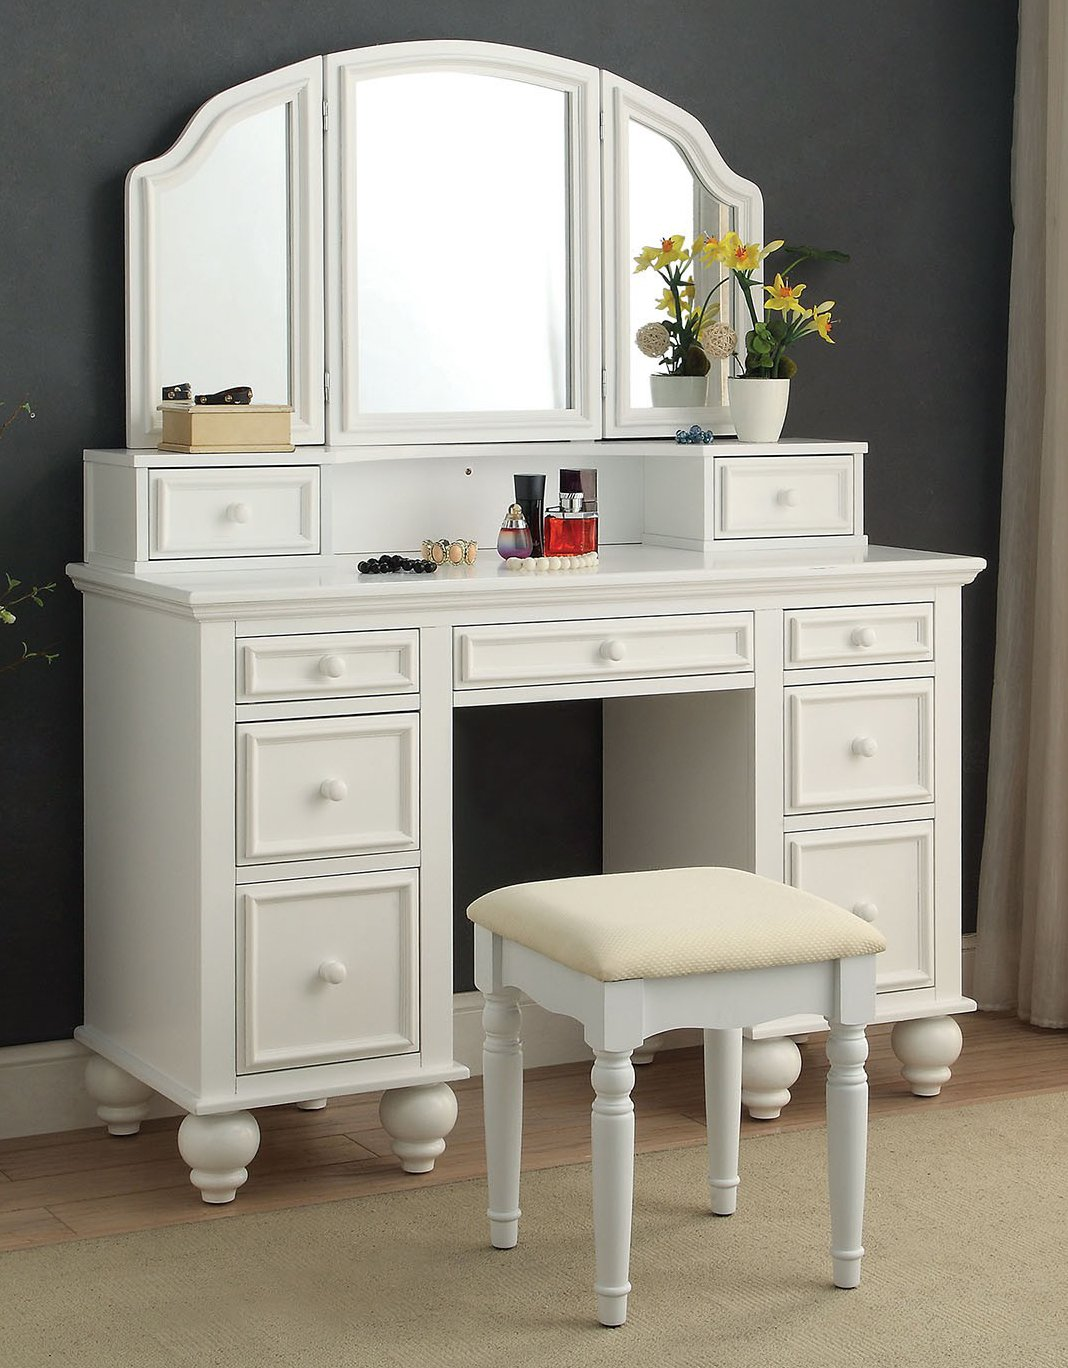 Furniture of America CM-DK6848WH Athy White Vanity with Stool by Furniture of America